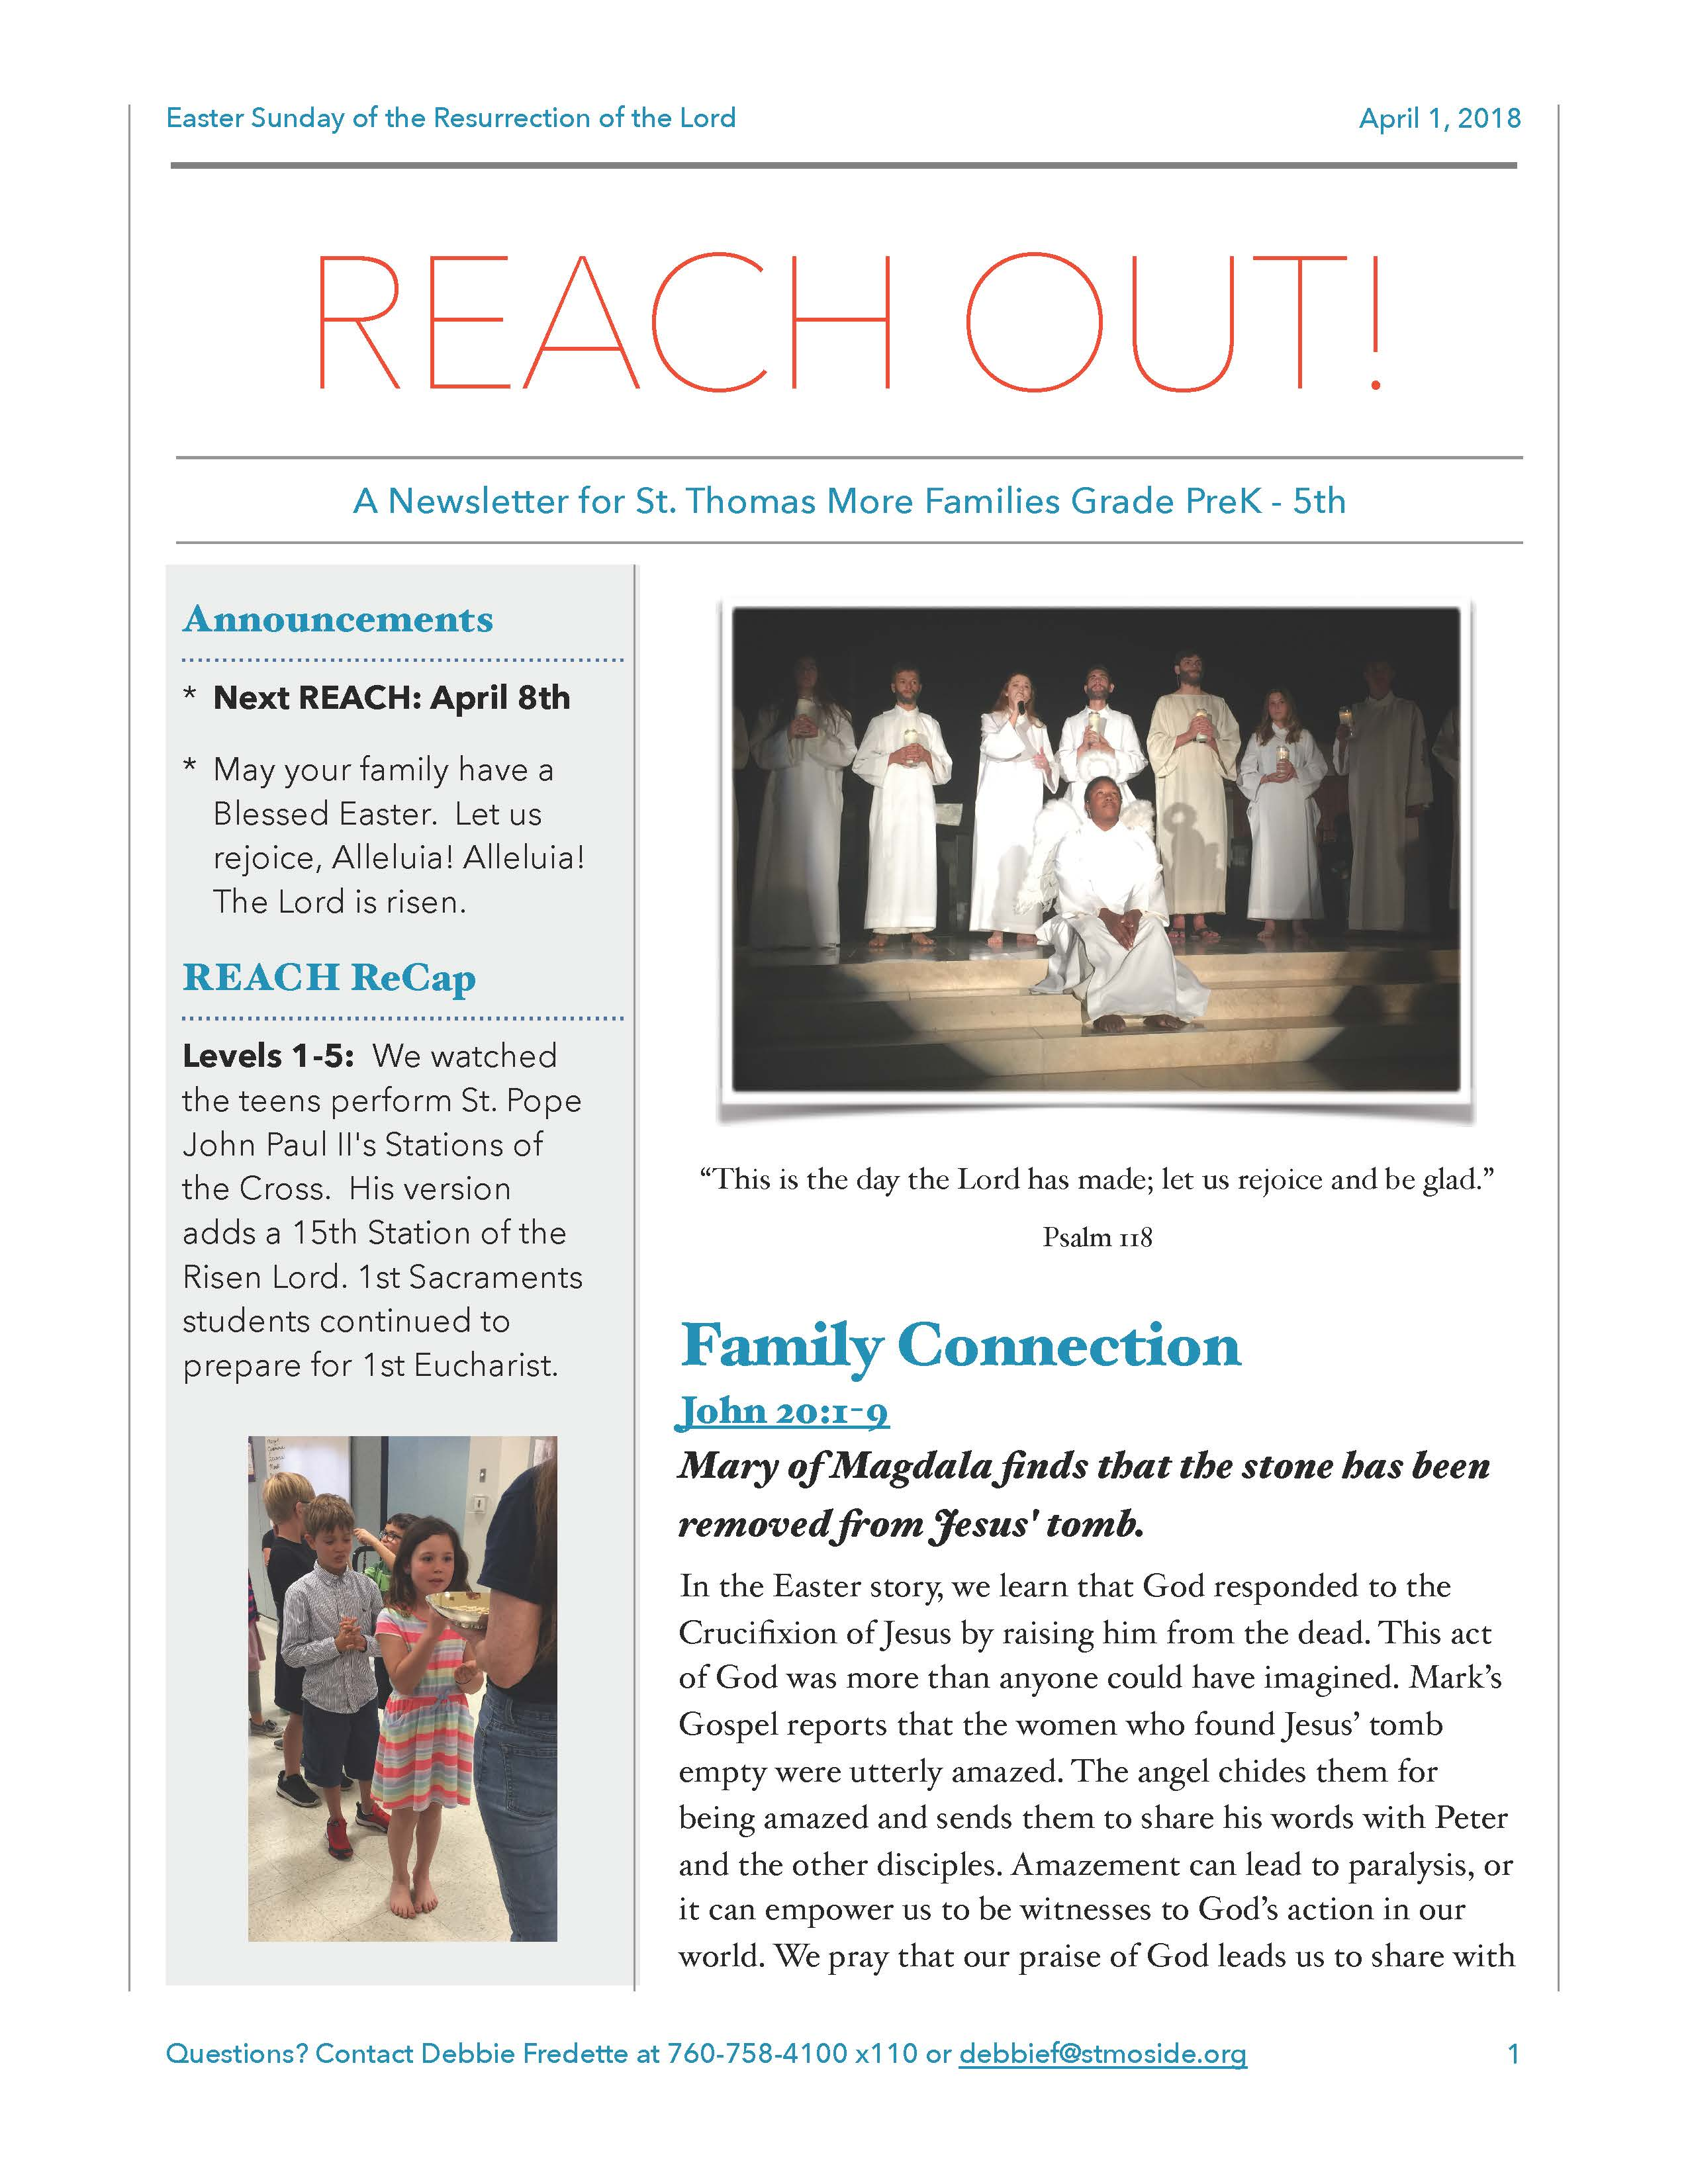 REACH Out Newsletter